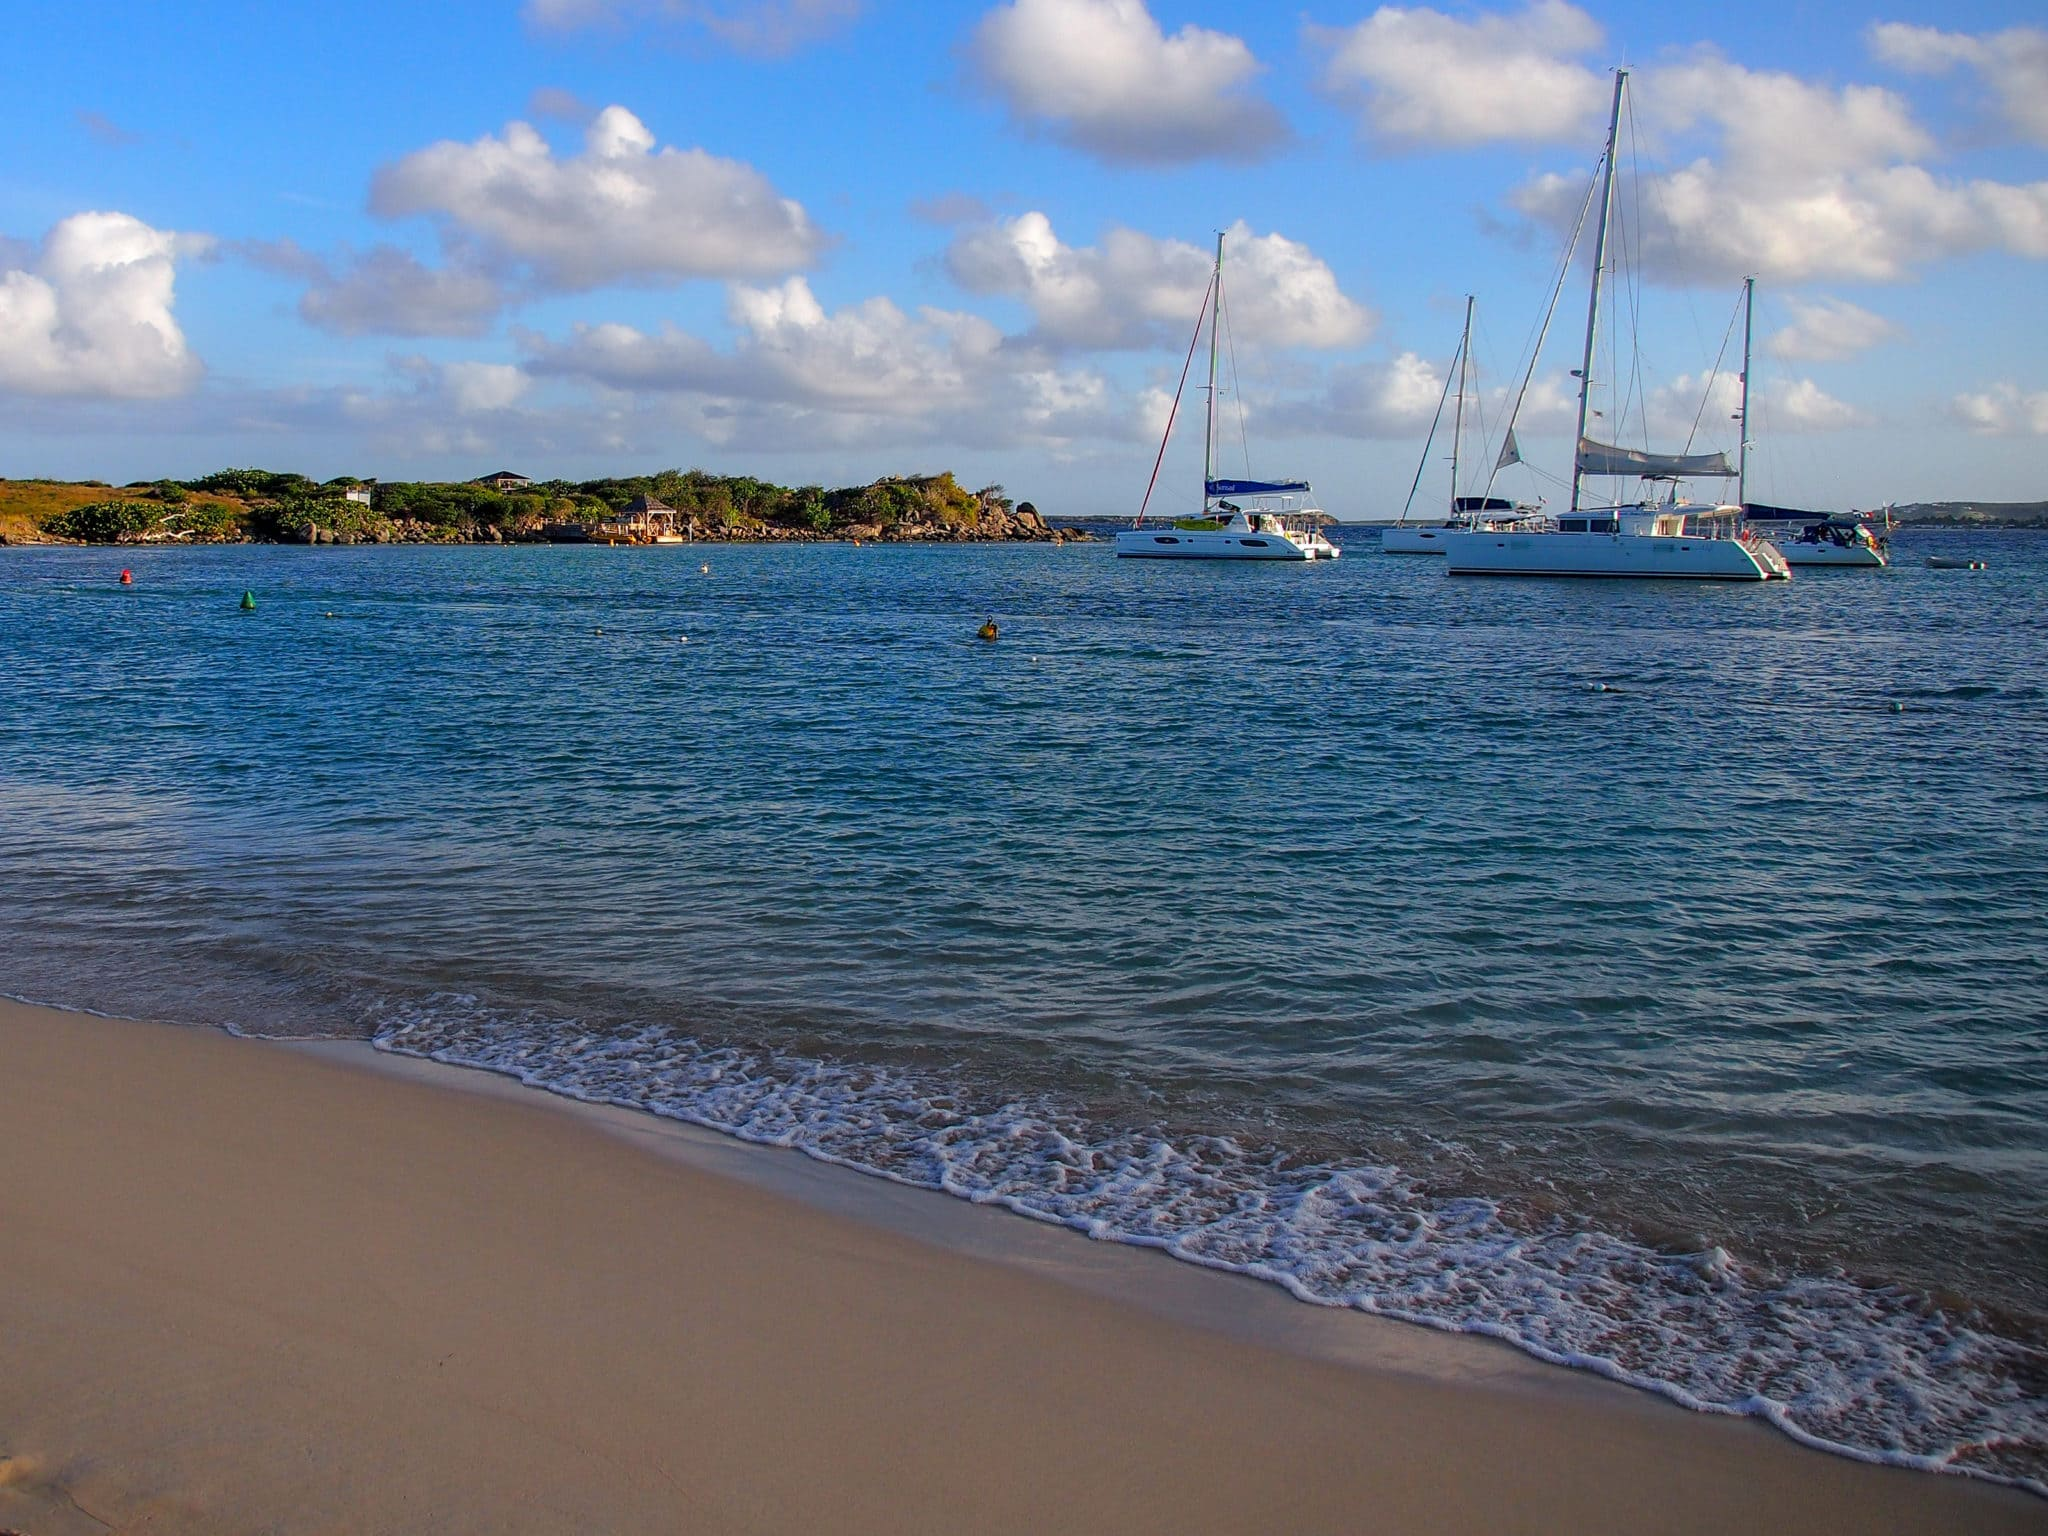 Pining For More Time At Pinel Island, St. Martin